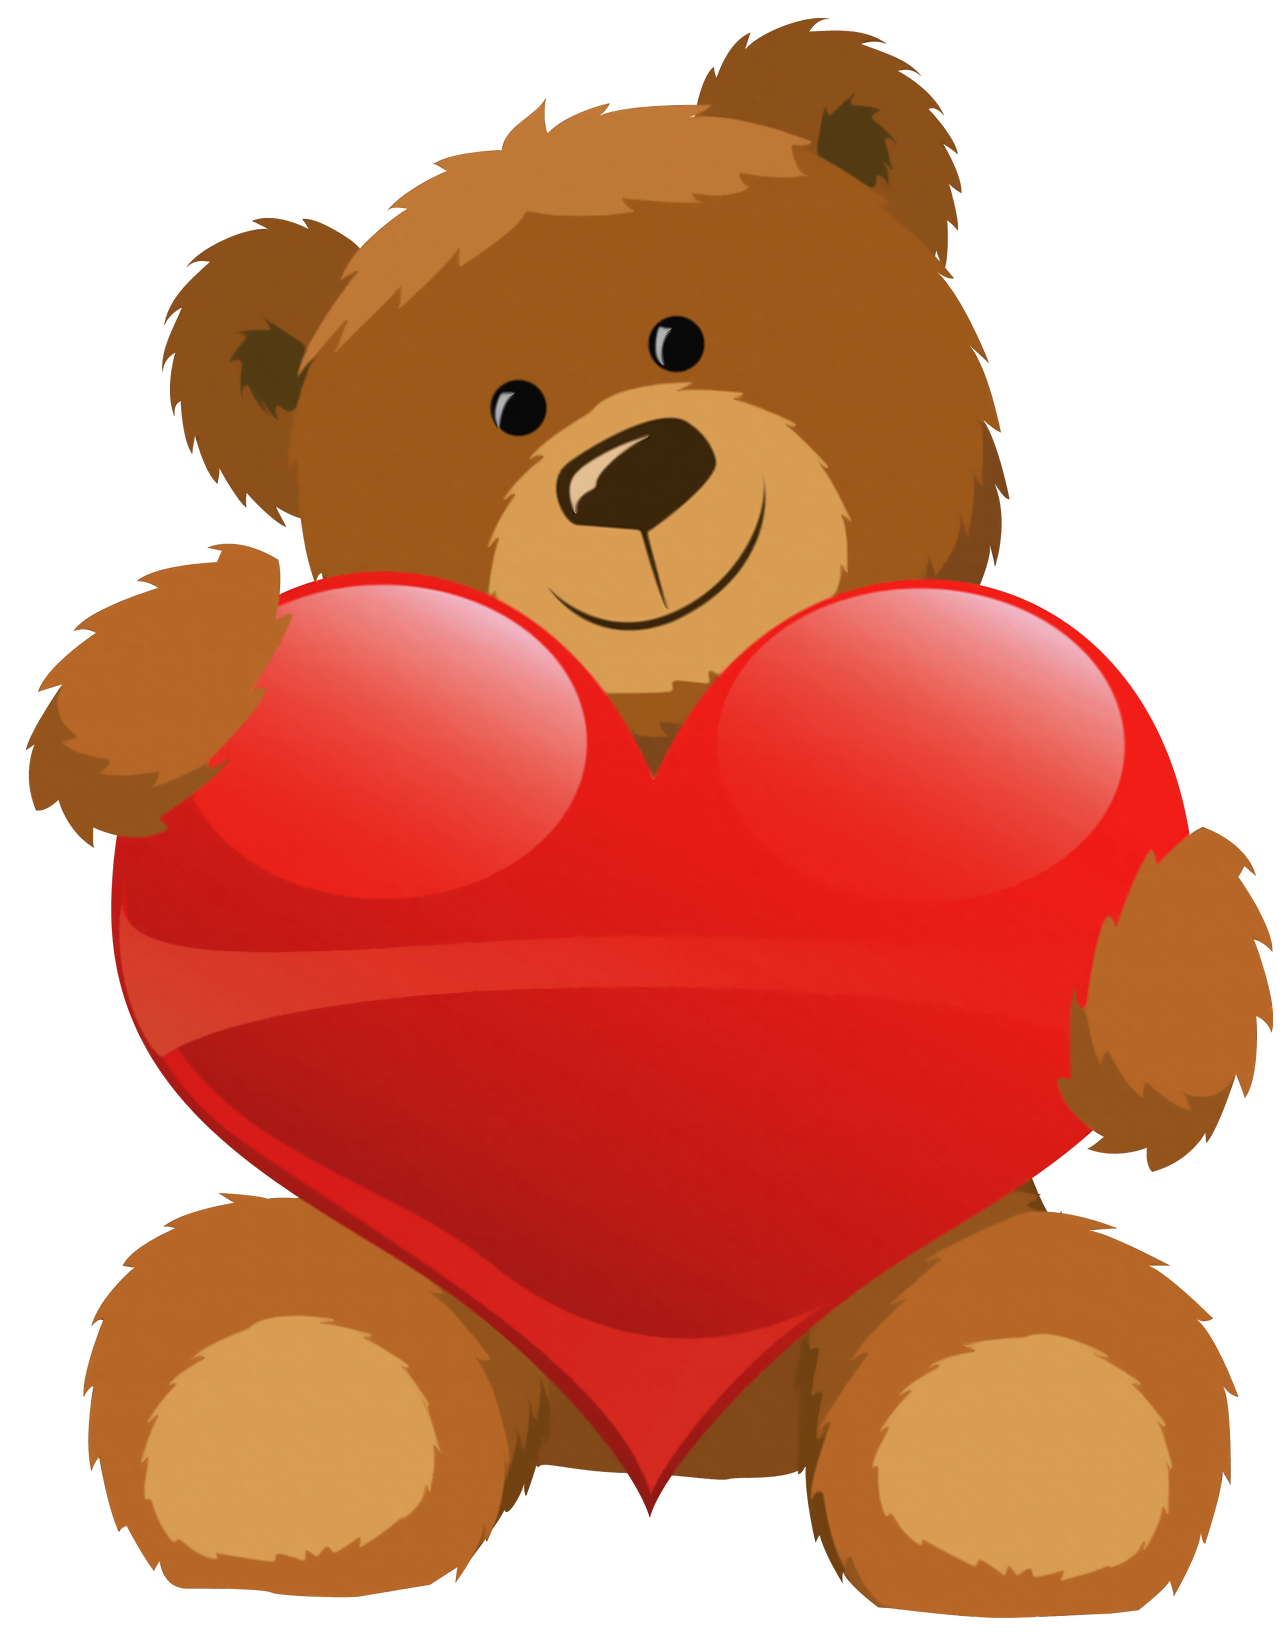 Preschool clipart bear. Cute cliparts choose your